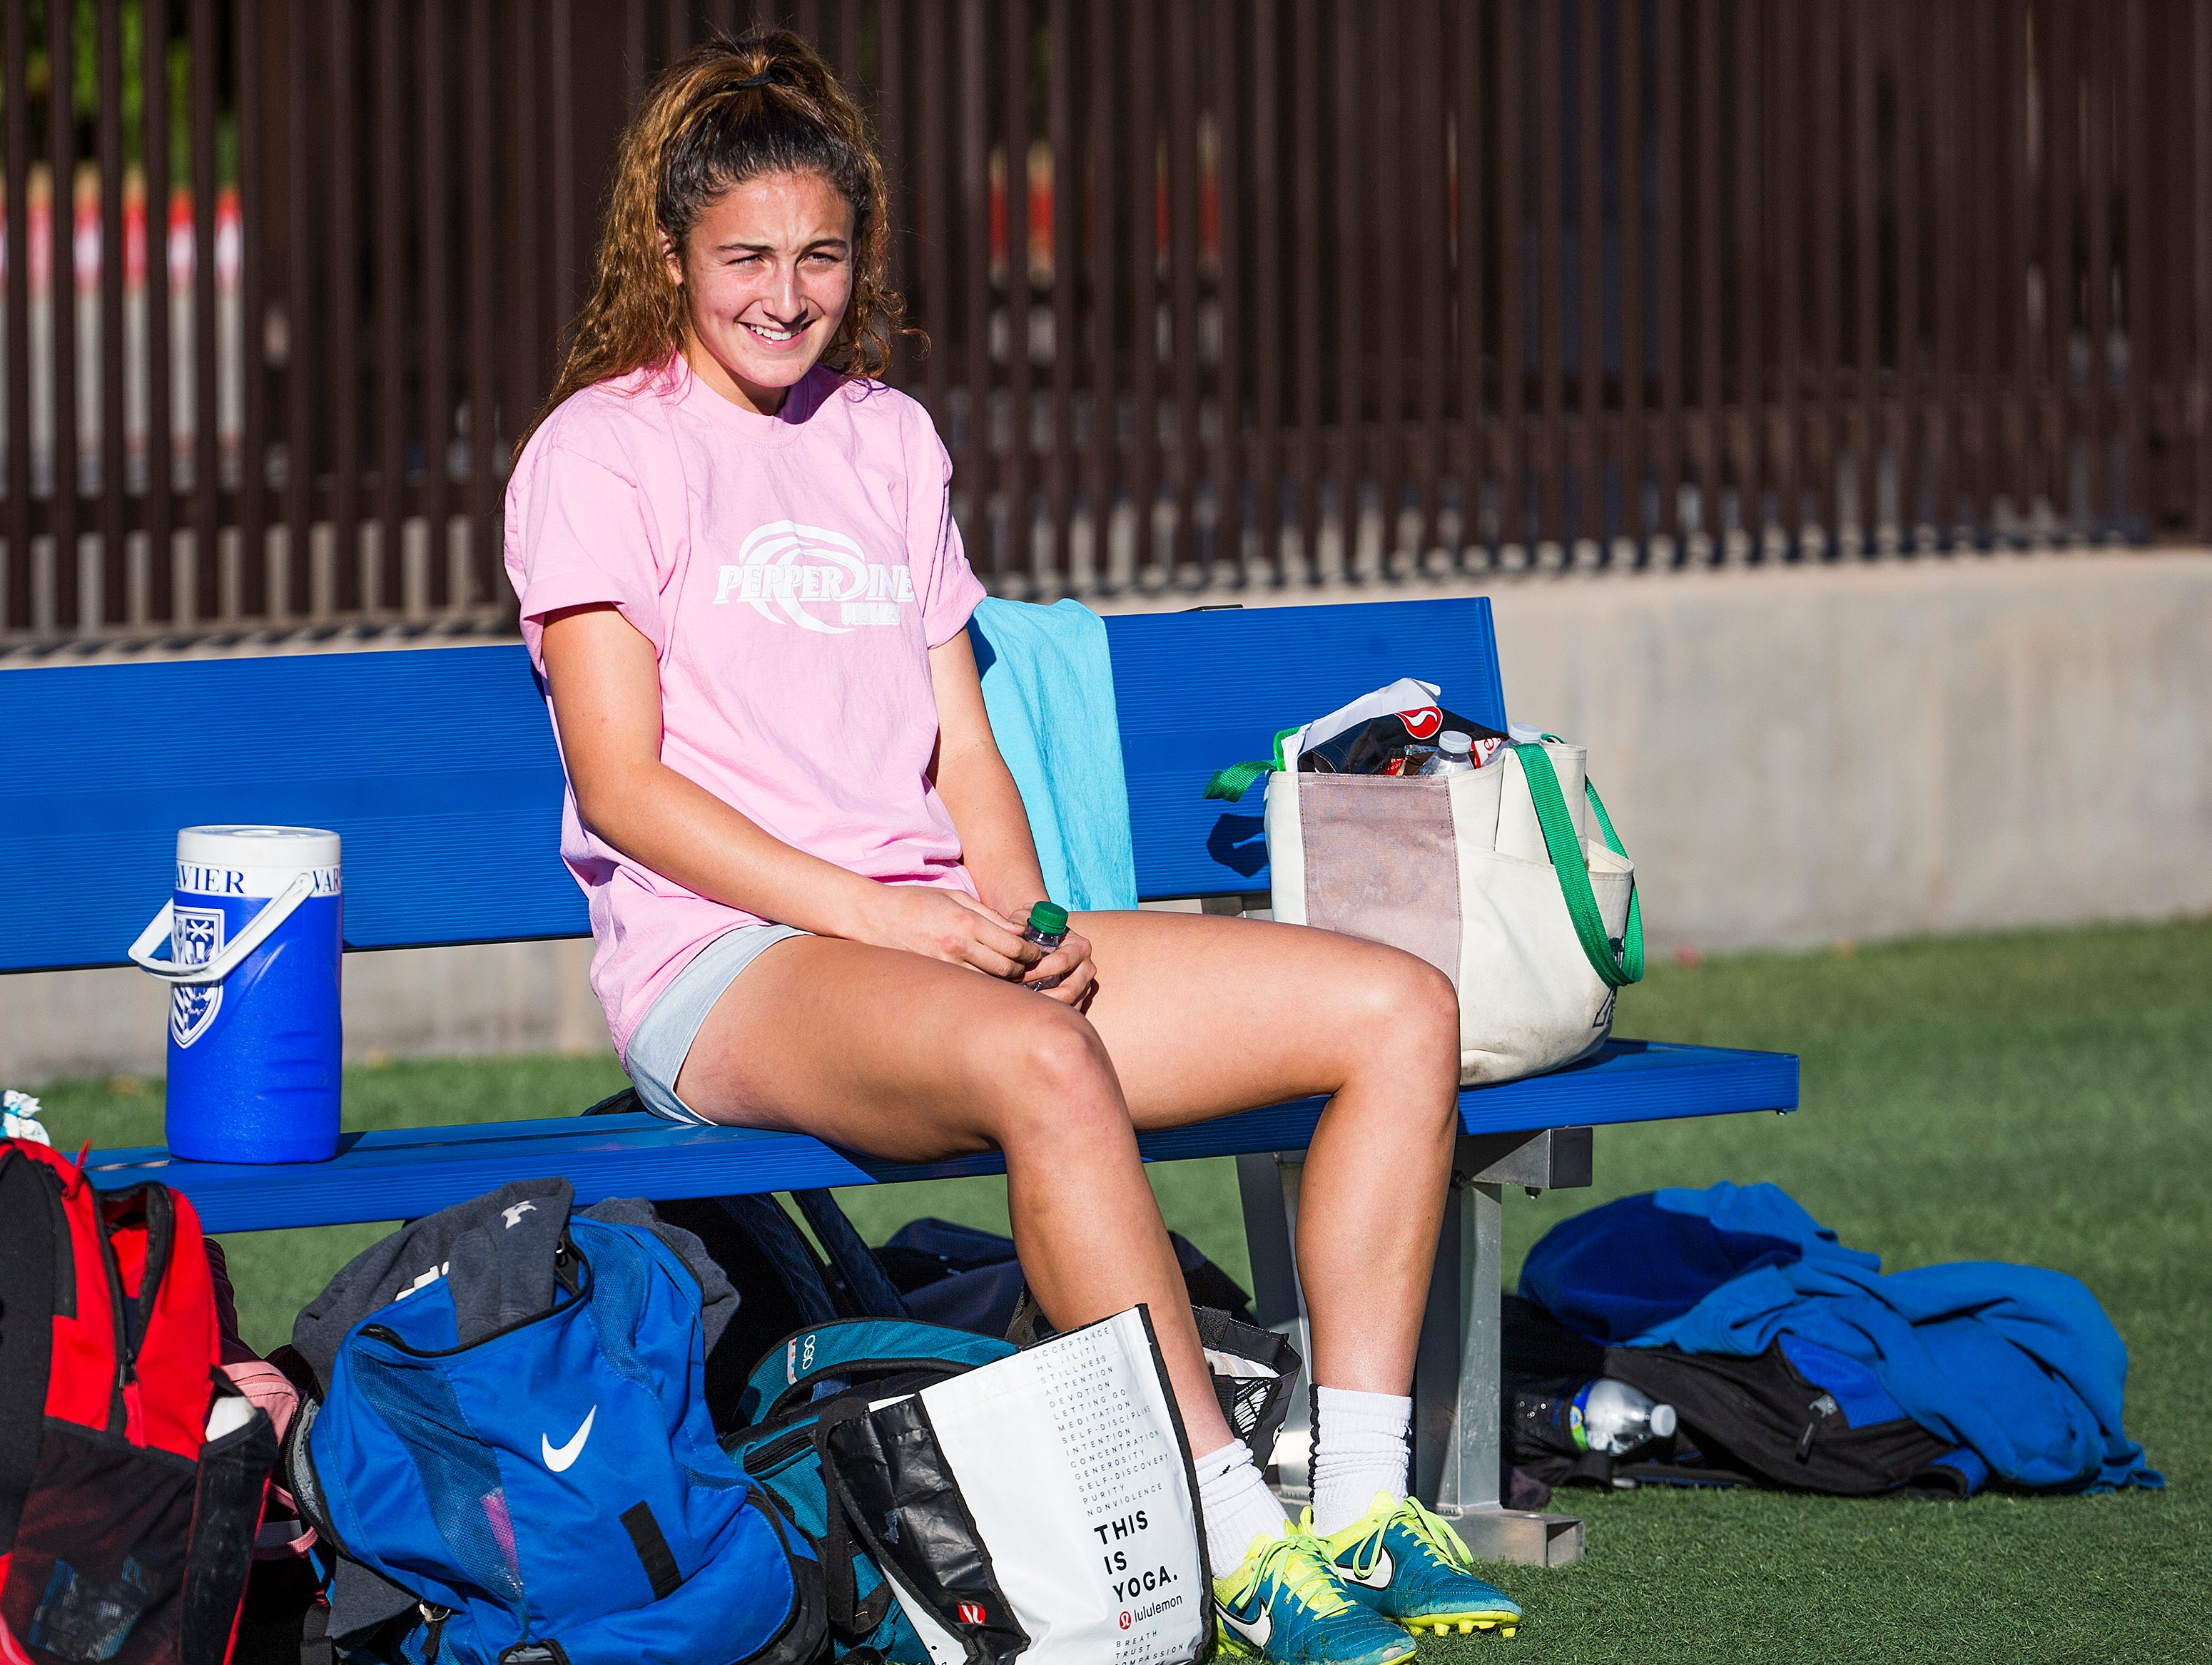 Pepperdine University soccer goalie Kinsey Ehmann takes a break after working out at Xavier College Preparatory Tuesday, November 13, 2018. She was evacuated from her school due to the fires raging in California.